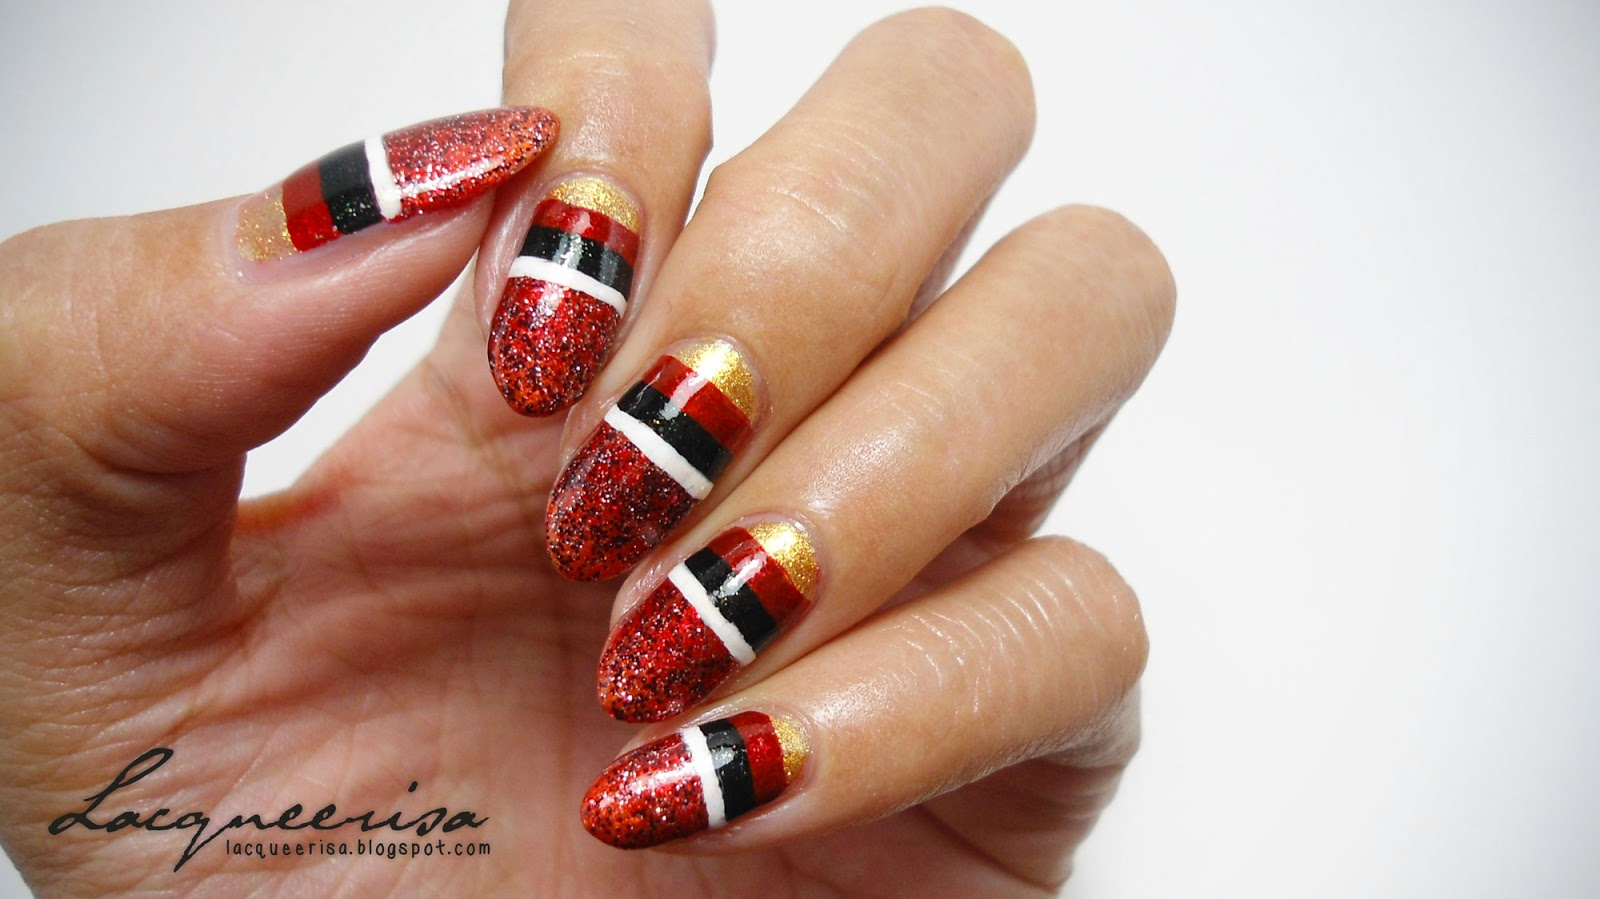 Germany Nails (Finale) lacqueerisa.blogspot.com